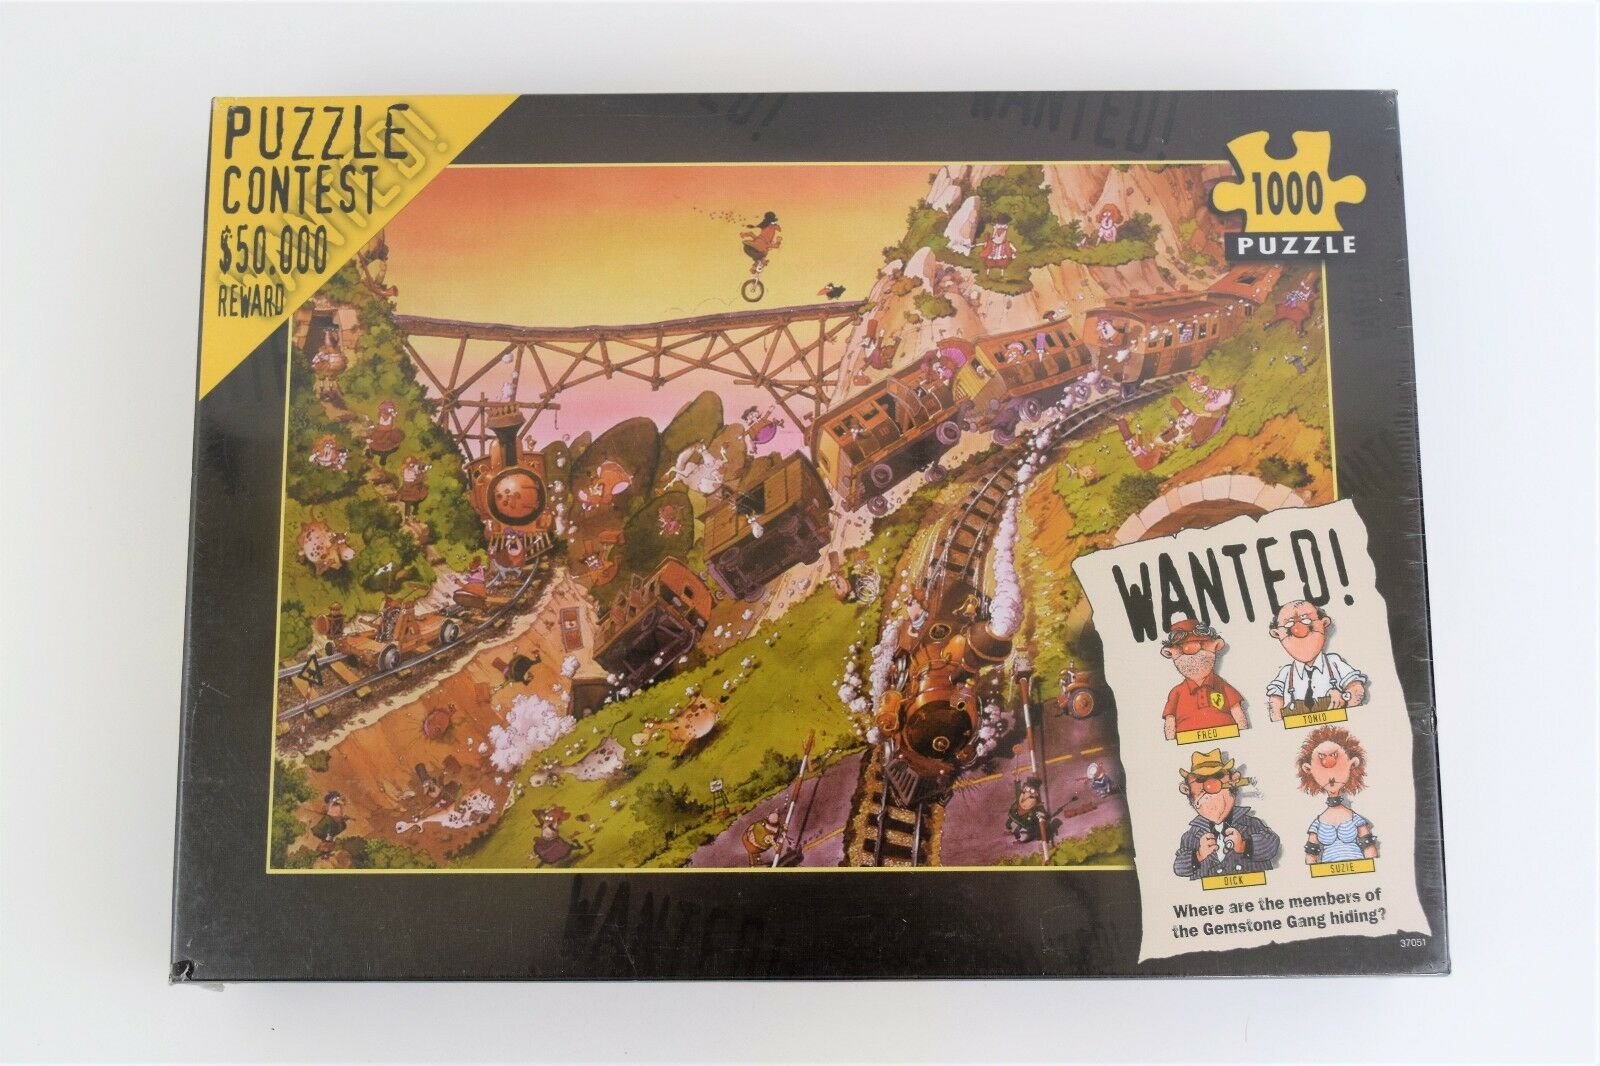 New Sealed Heye WANTED  Puzzle Contest  50,000 REWARD Jigsaw 1000 Pieces 2003